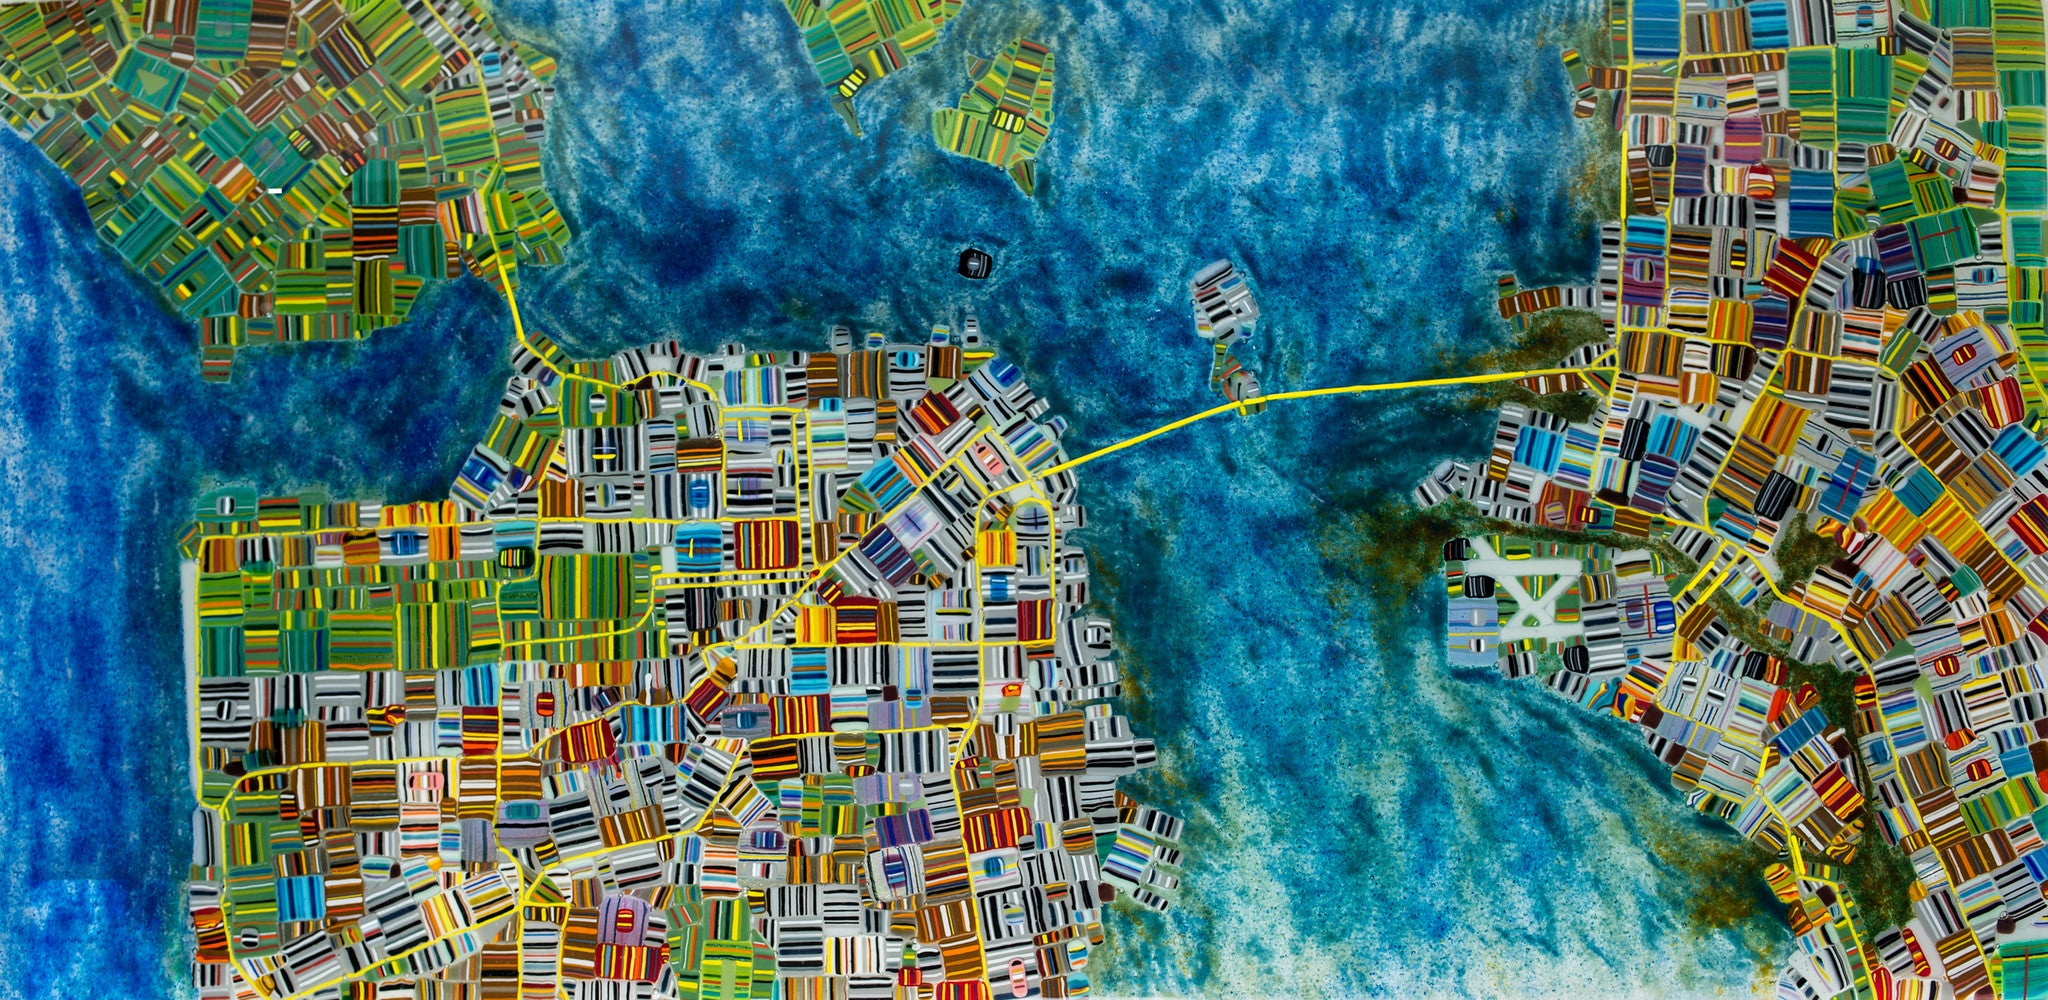 Map / 48 x 24 / fused and bent glass